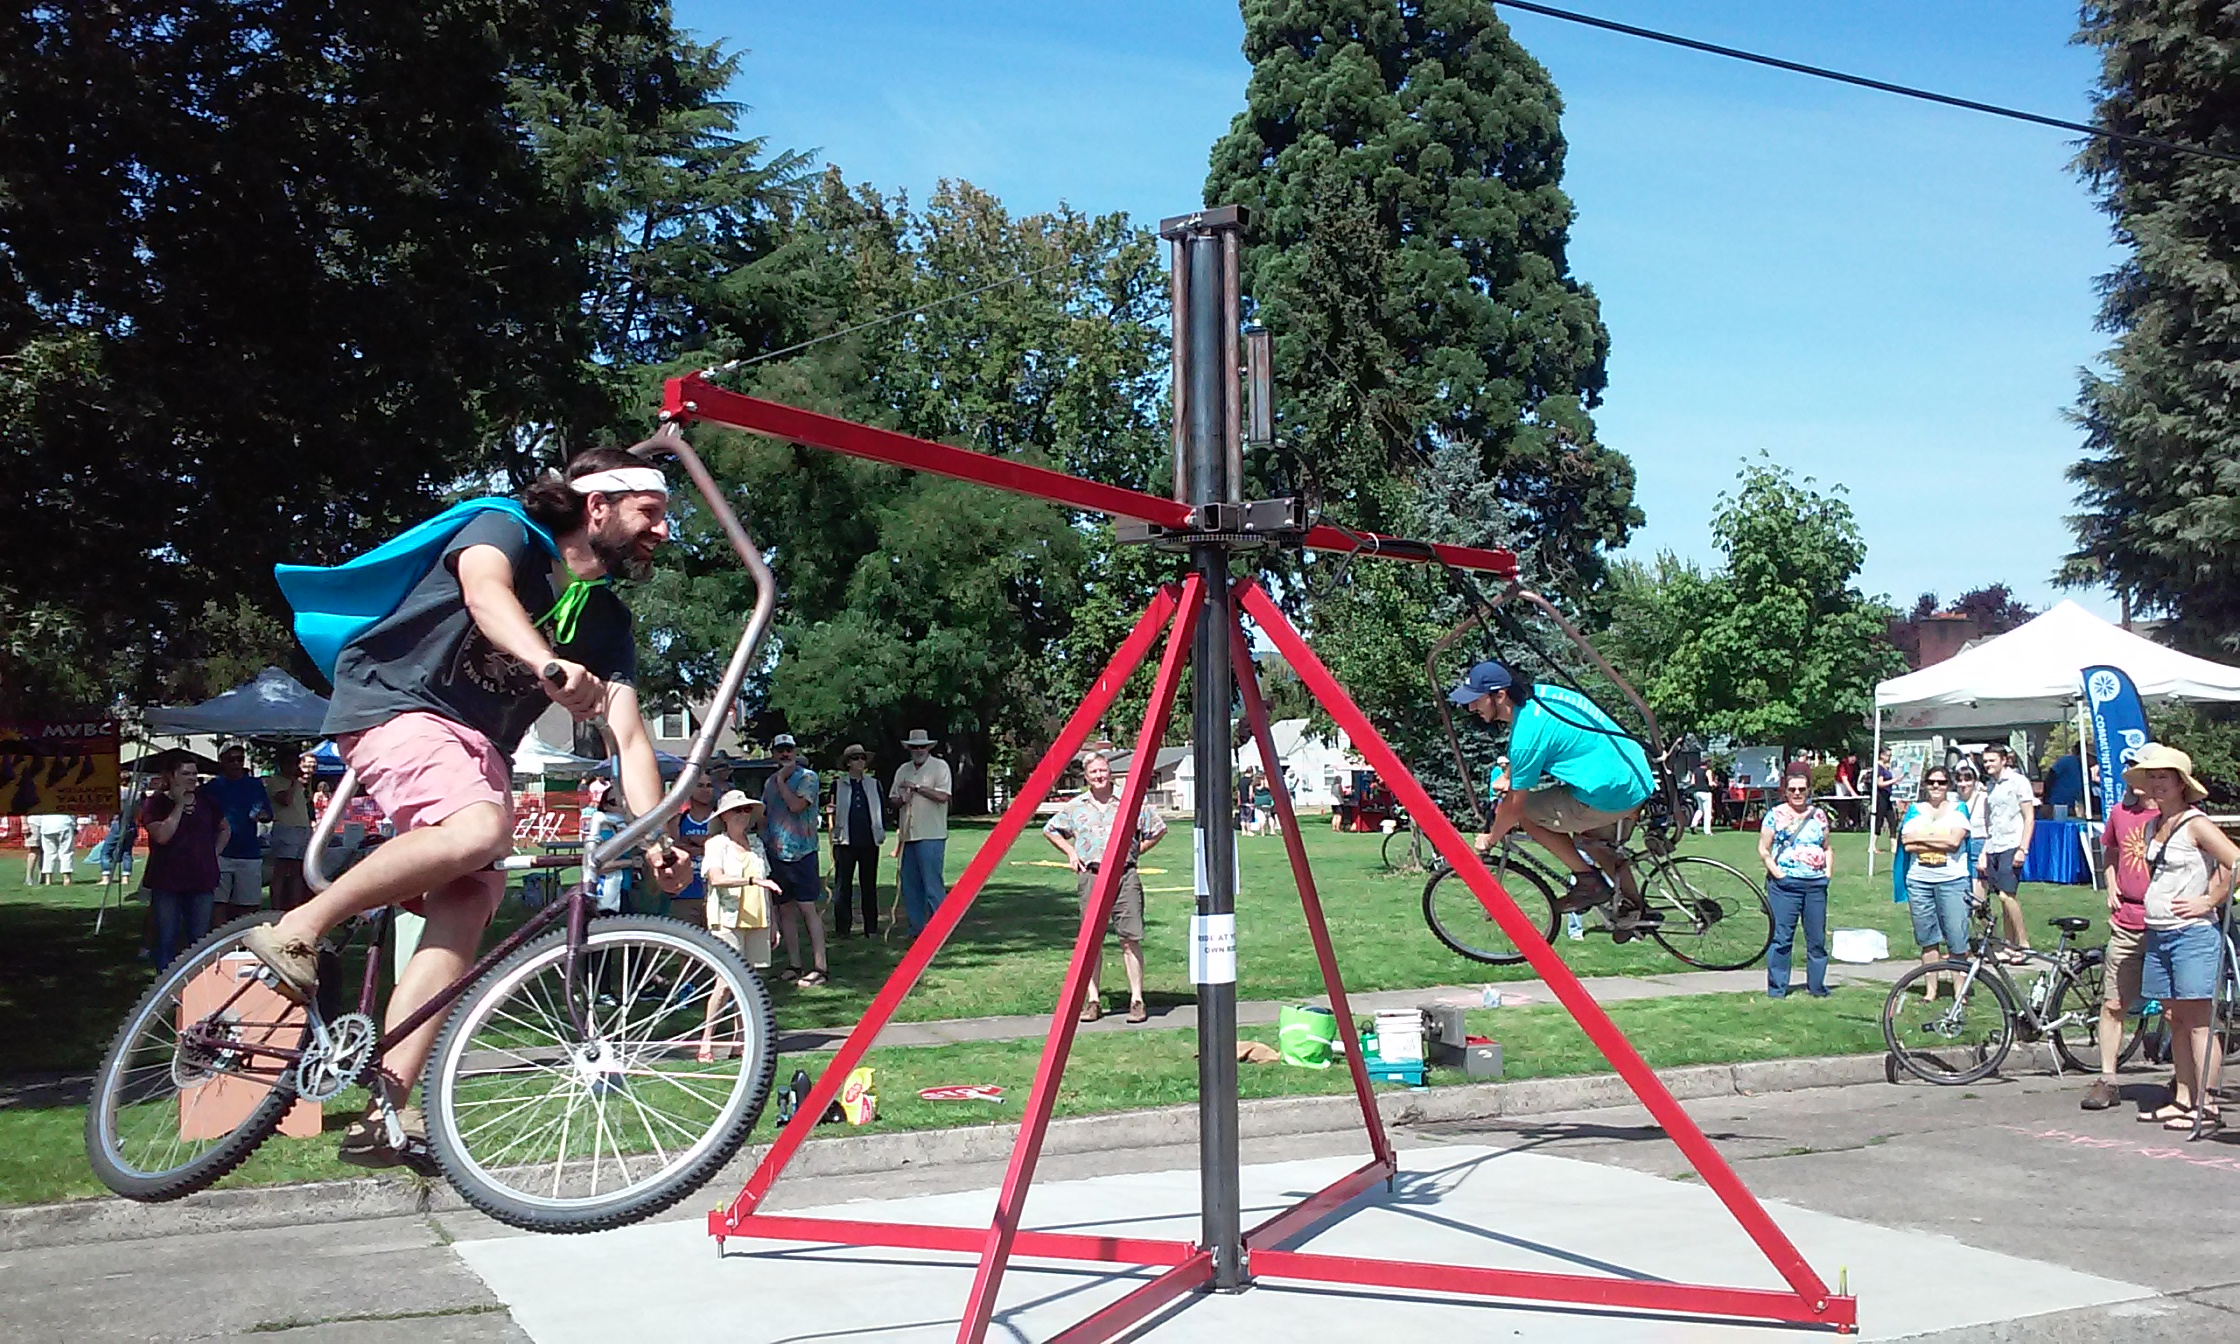 The Flanger in action at Corvallis Open Streets in August 2017